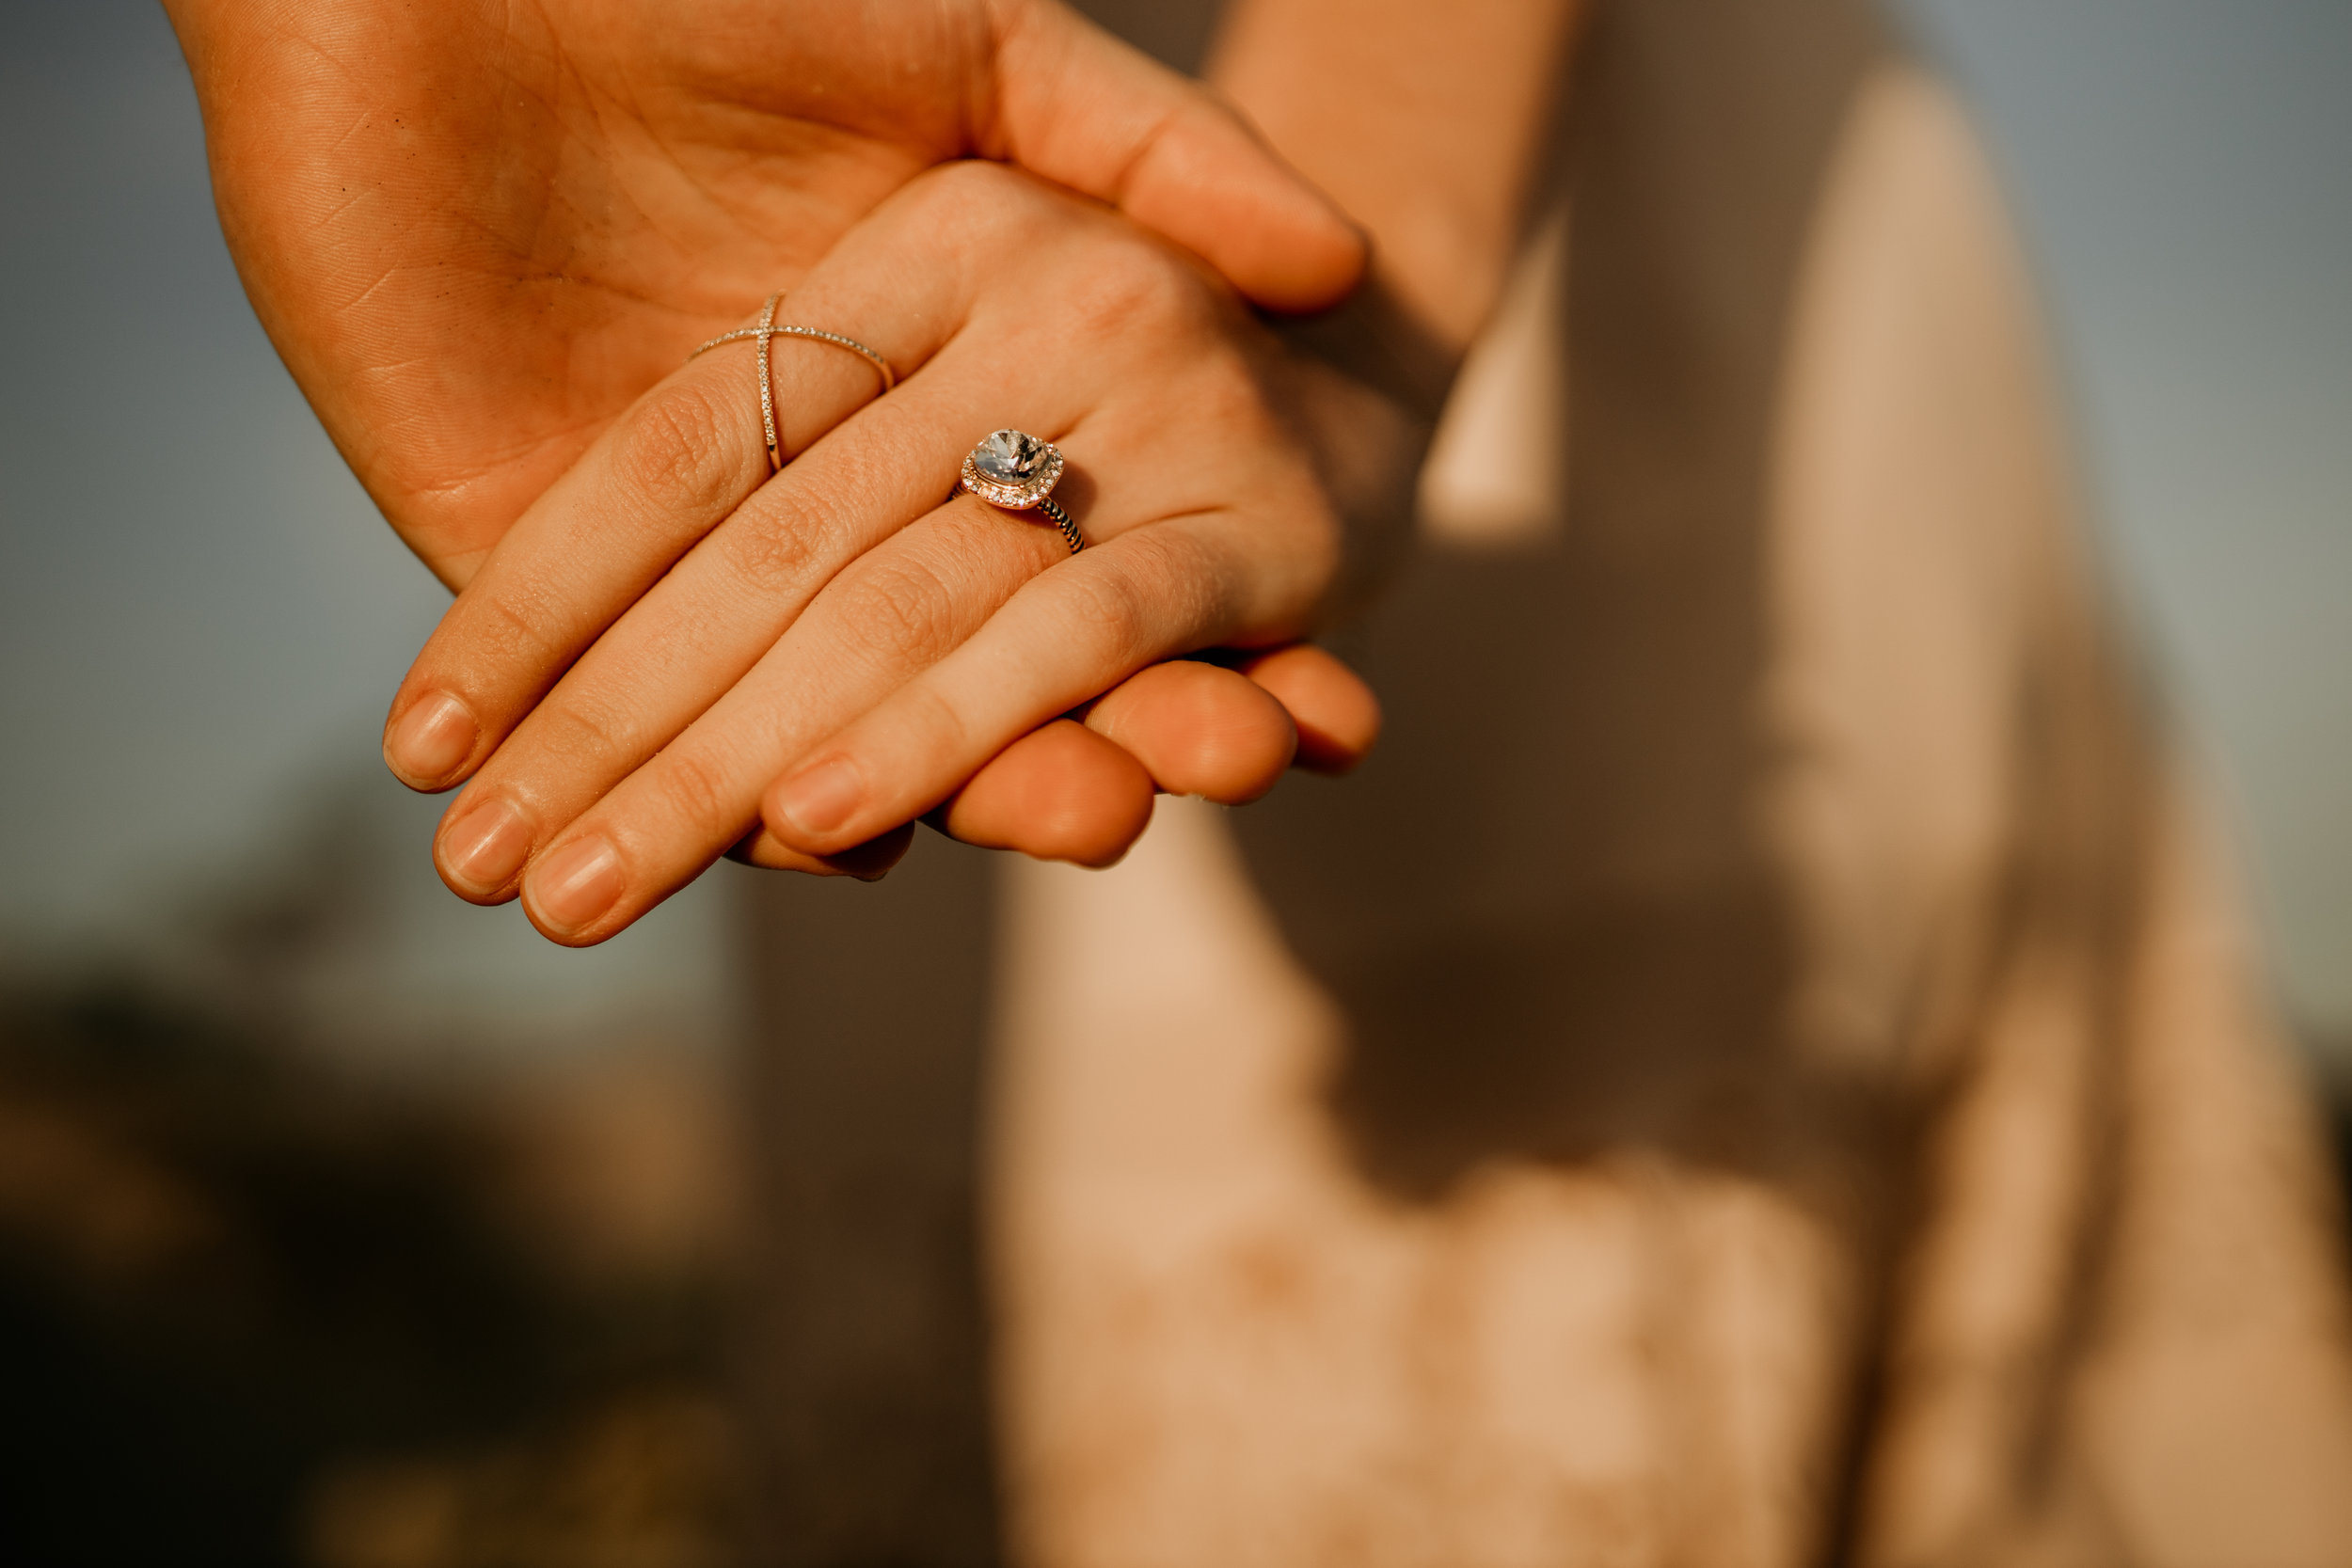 ring-beach-elopement-engagement-wedding-love-little-rock-arkansas-photographer-erin-venable-photography-bride-groom-palm-springs-california-dessert